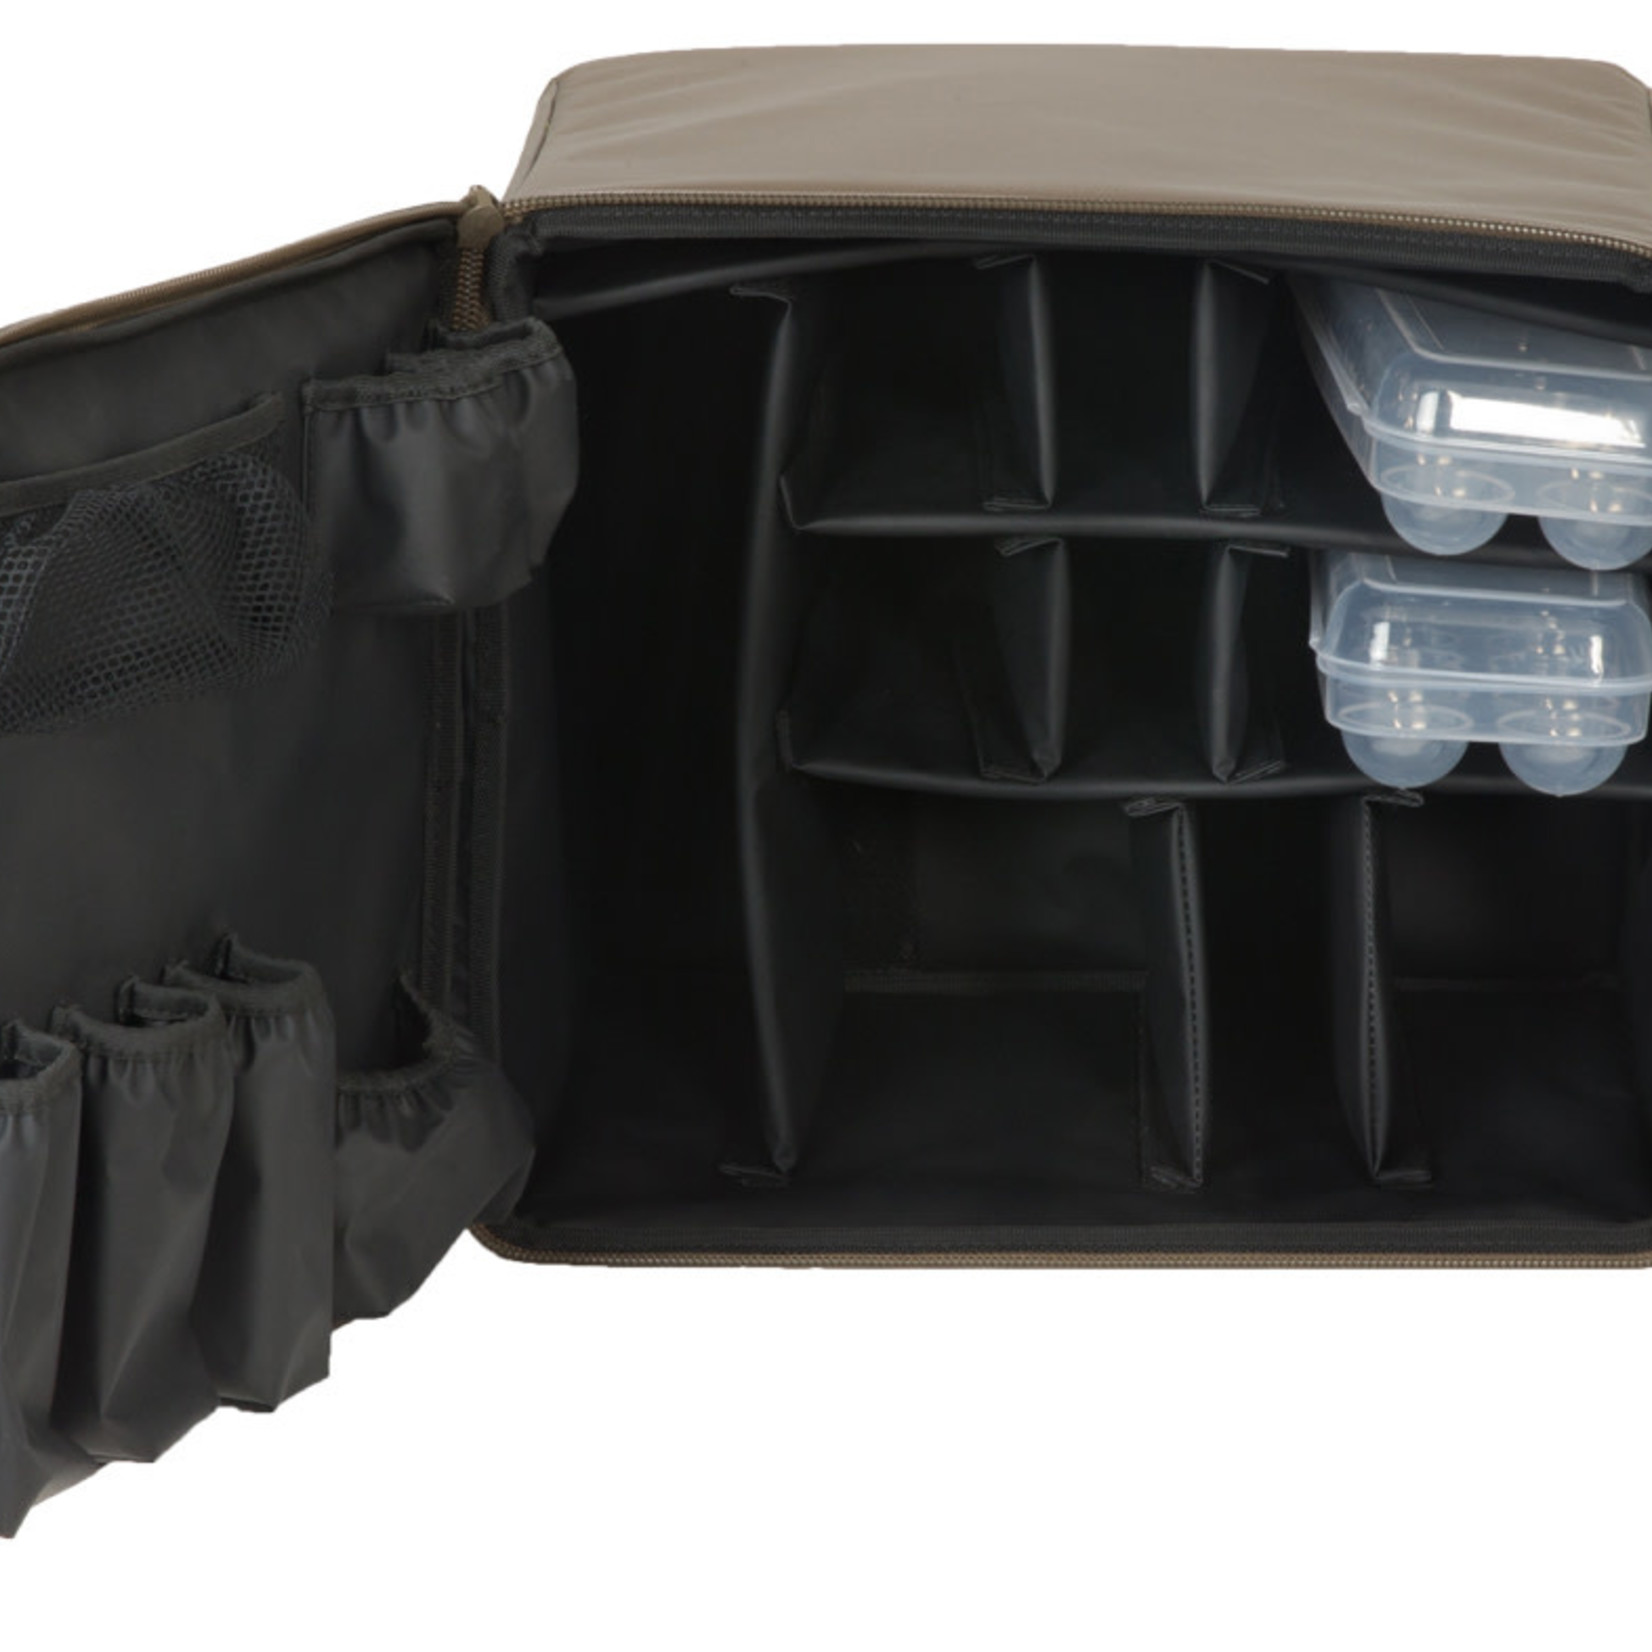 BANDED Breakfast-In-The-Blind Cooler